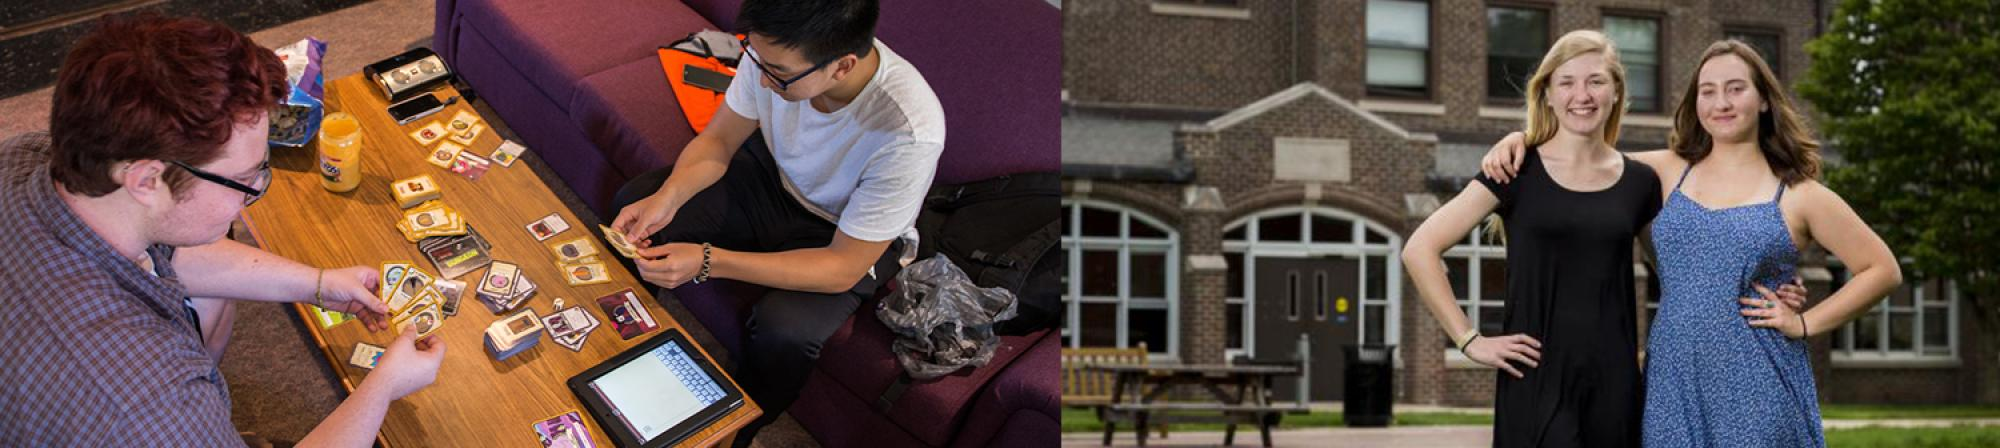 first photo: two male students playing cards in a residence hall lounge, second photo: two female students standing infront of a residence hall with their arns around each other